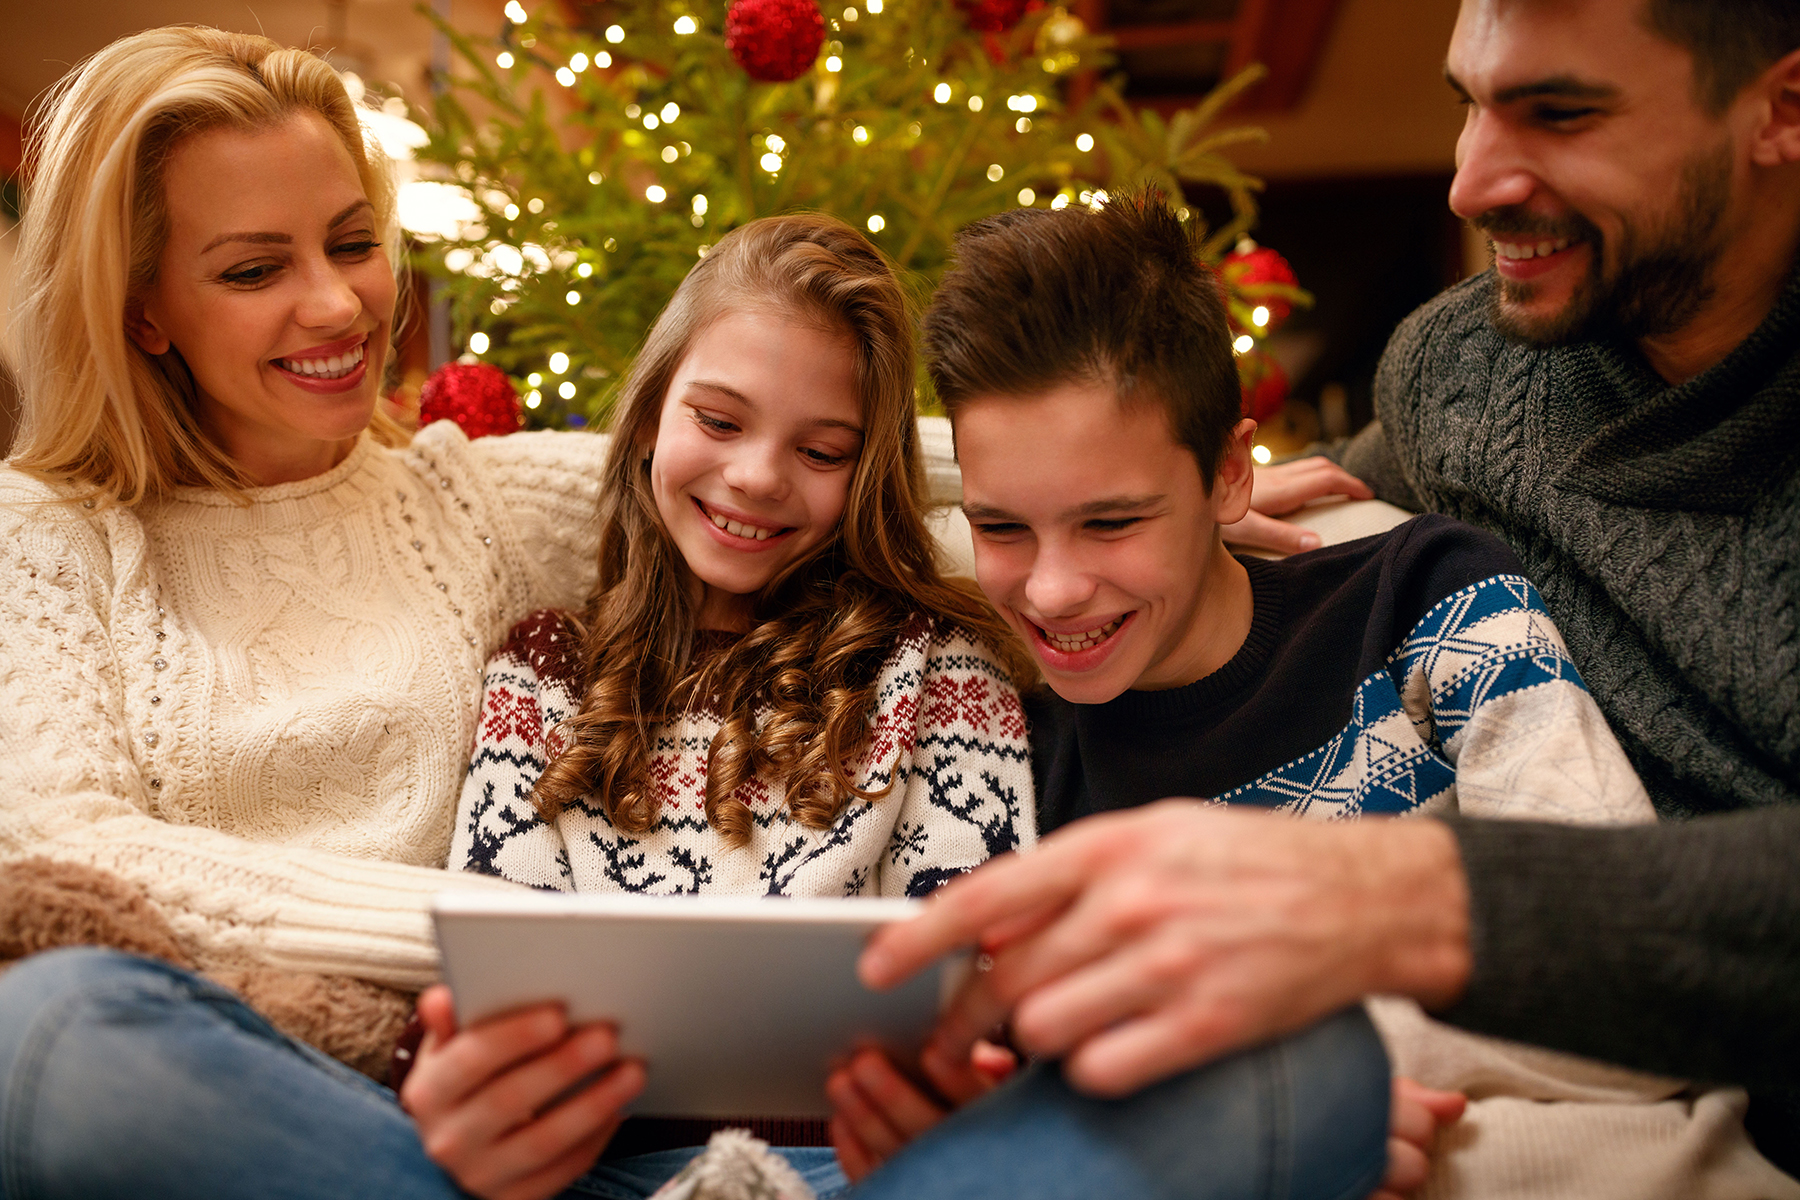 How to Make Christmas More Meaningful for Your Kids